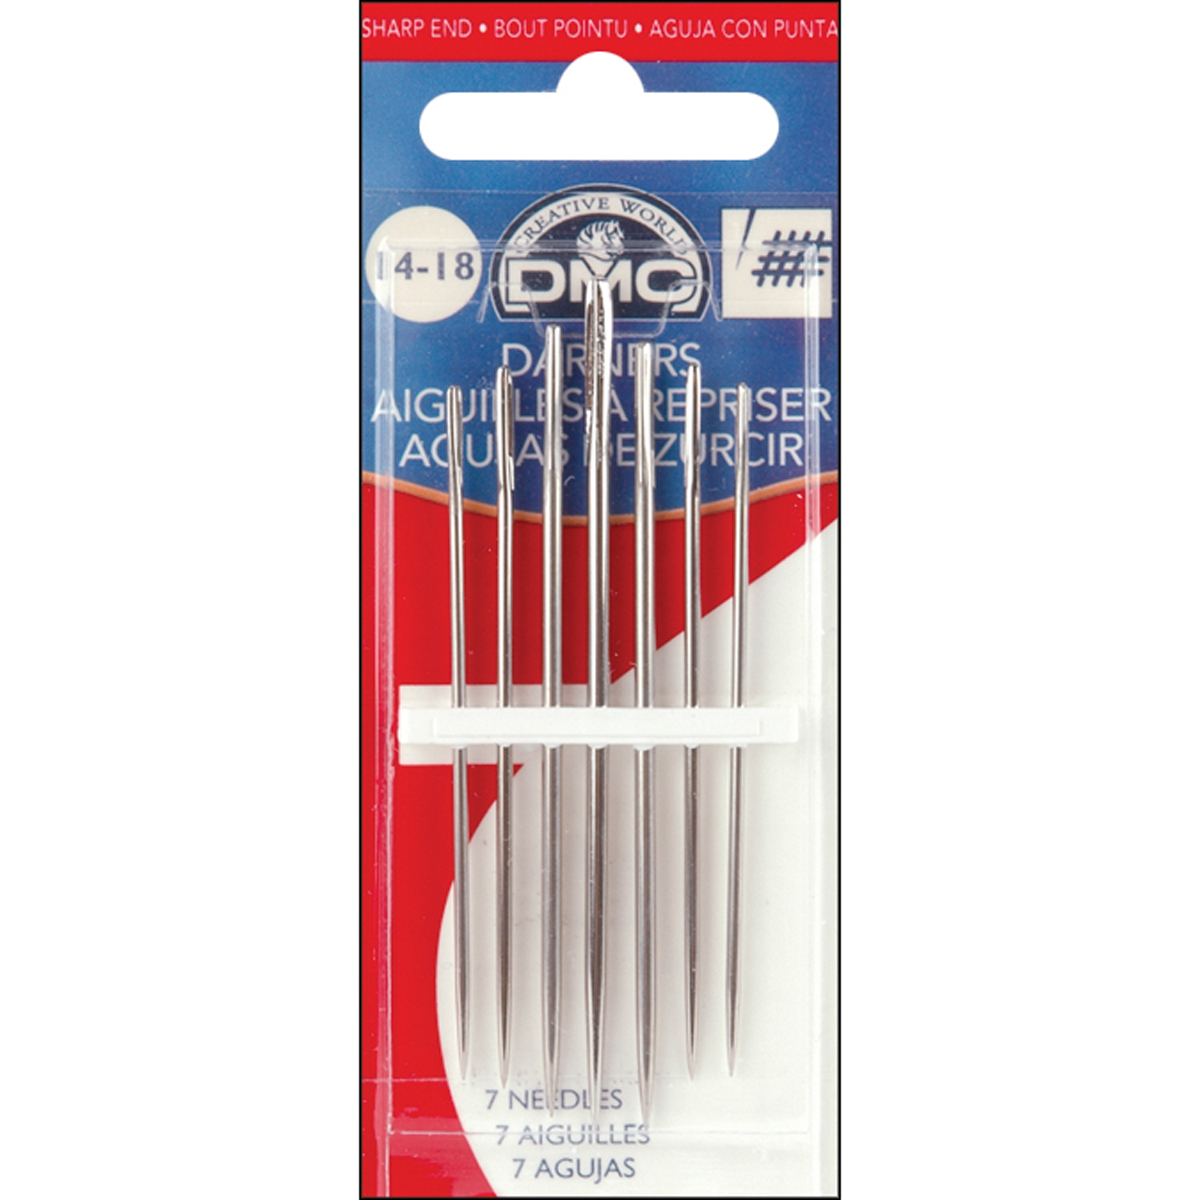 DMC 1769-18 Darners Hand Needles, 6-Pack, Size 18 Multi-Colored